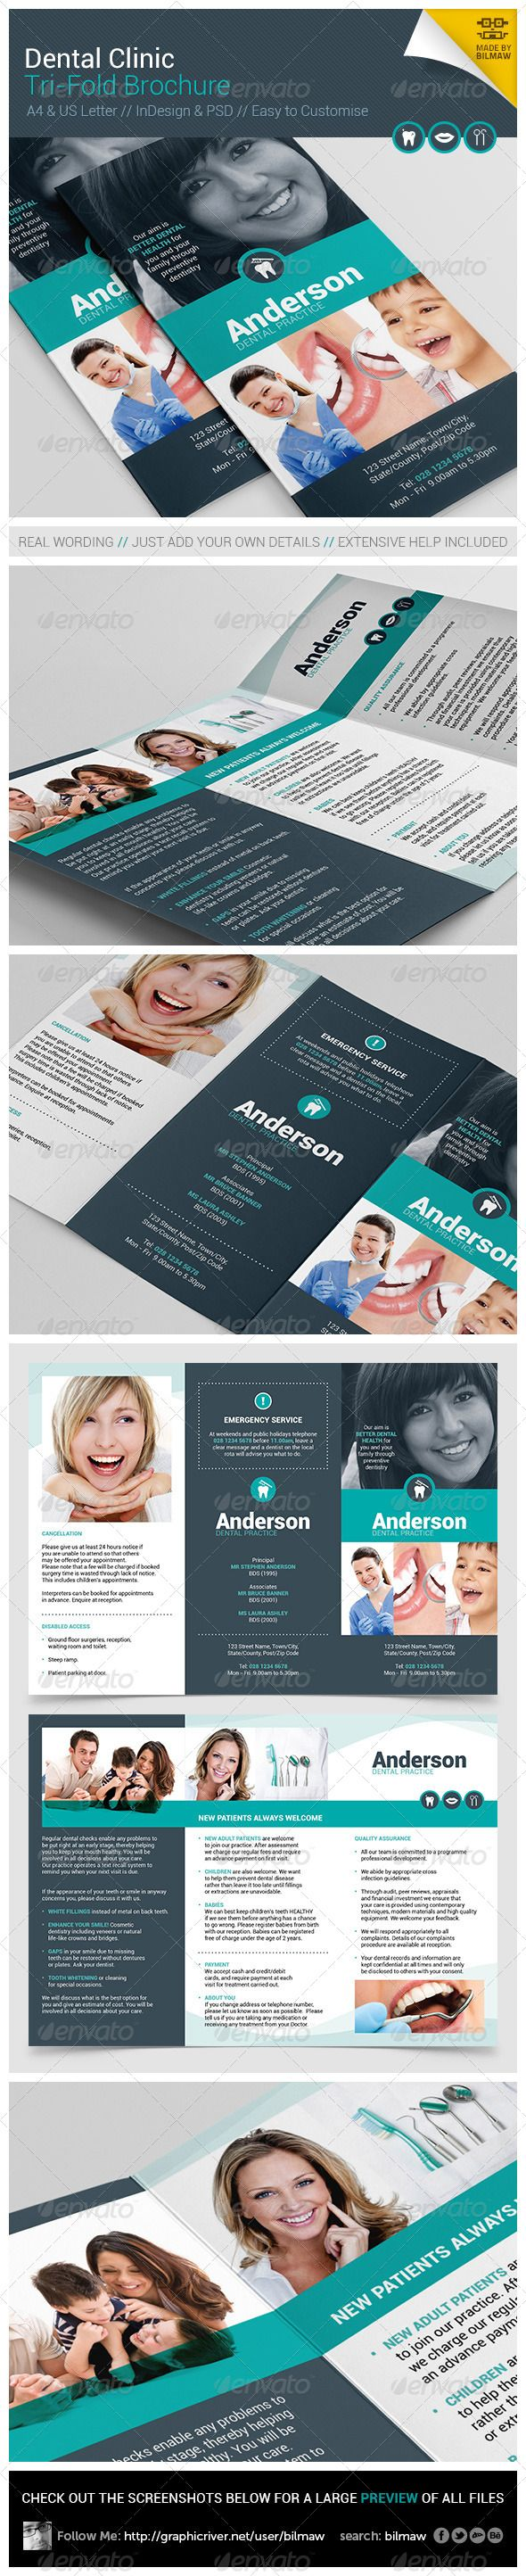 Dental clinic tri fold brochure tri fold brochure tri for Clinic brochure template